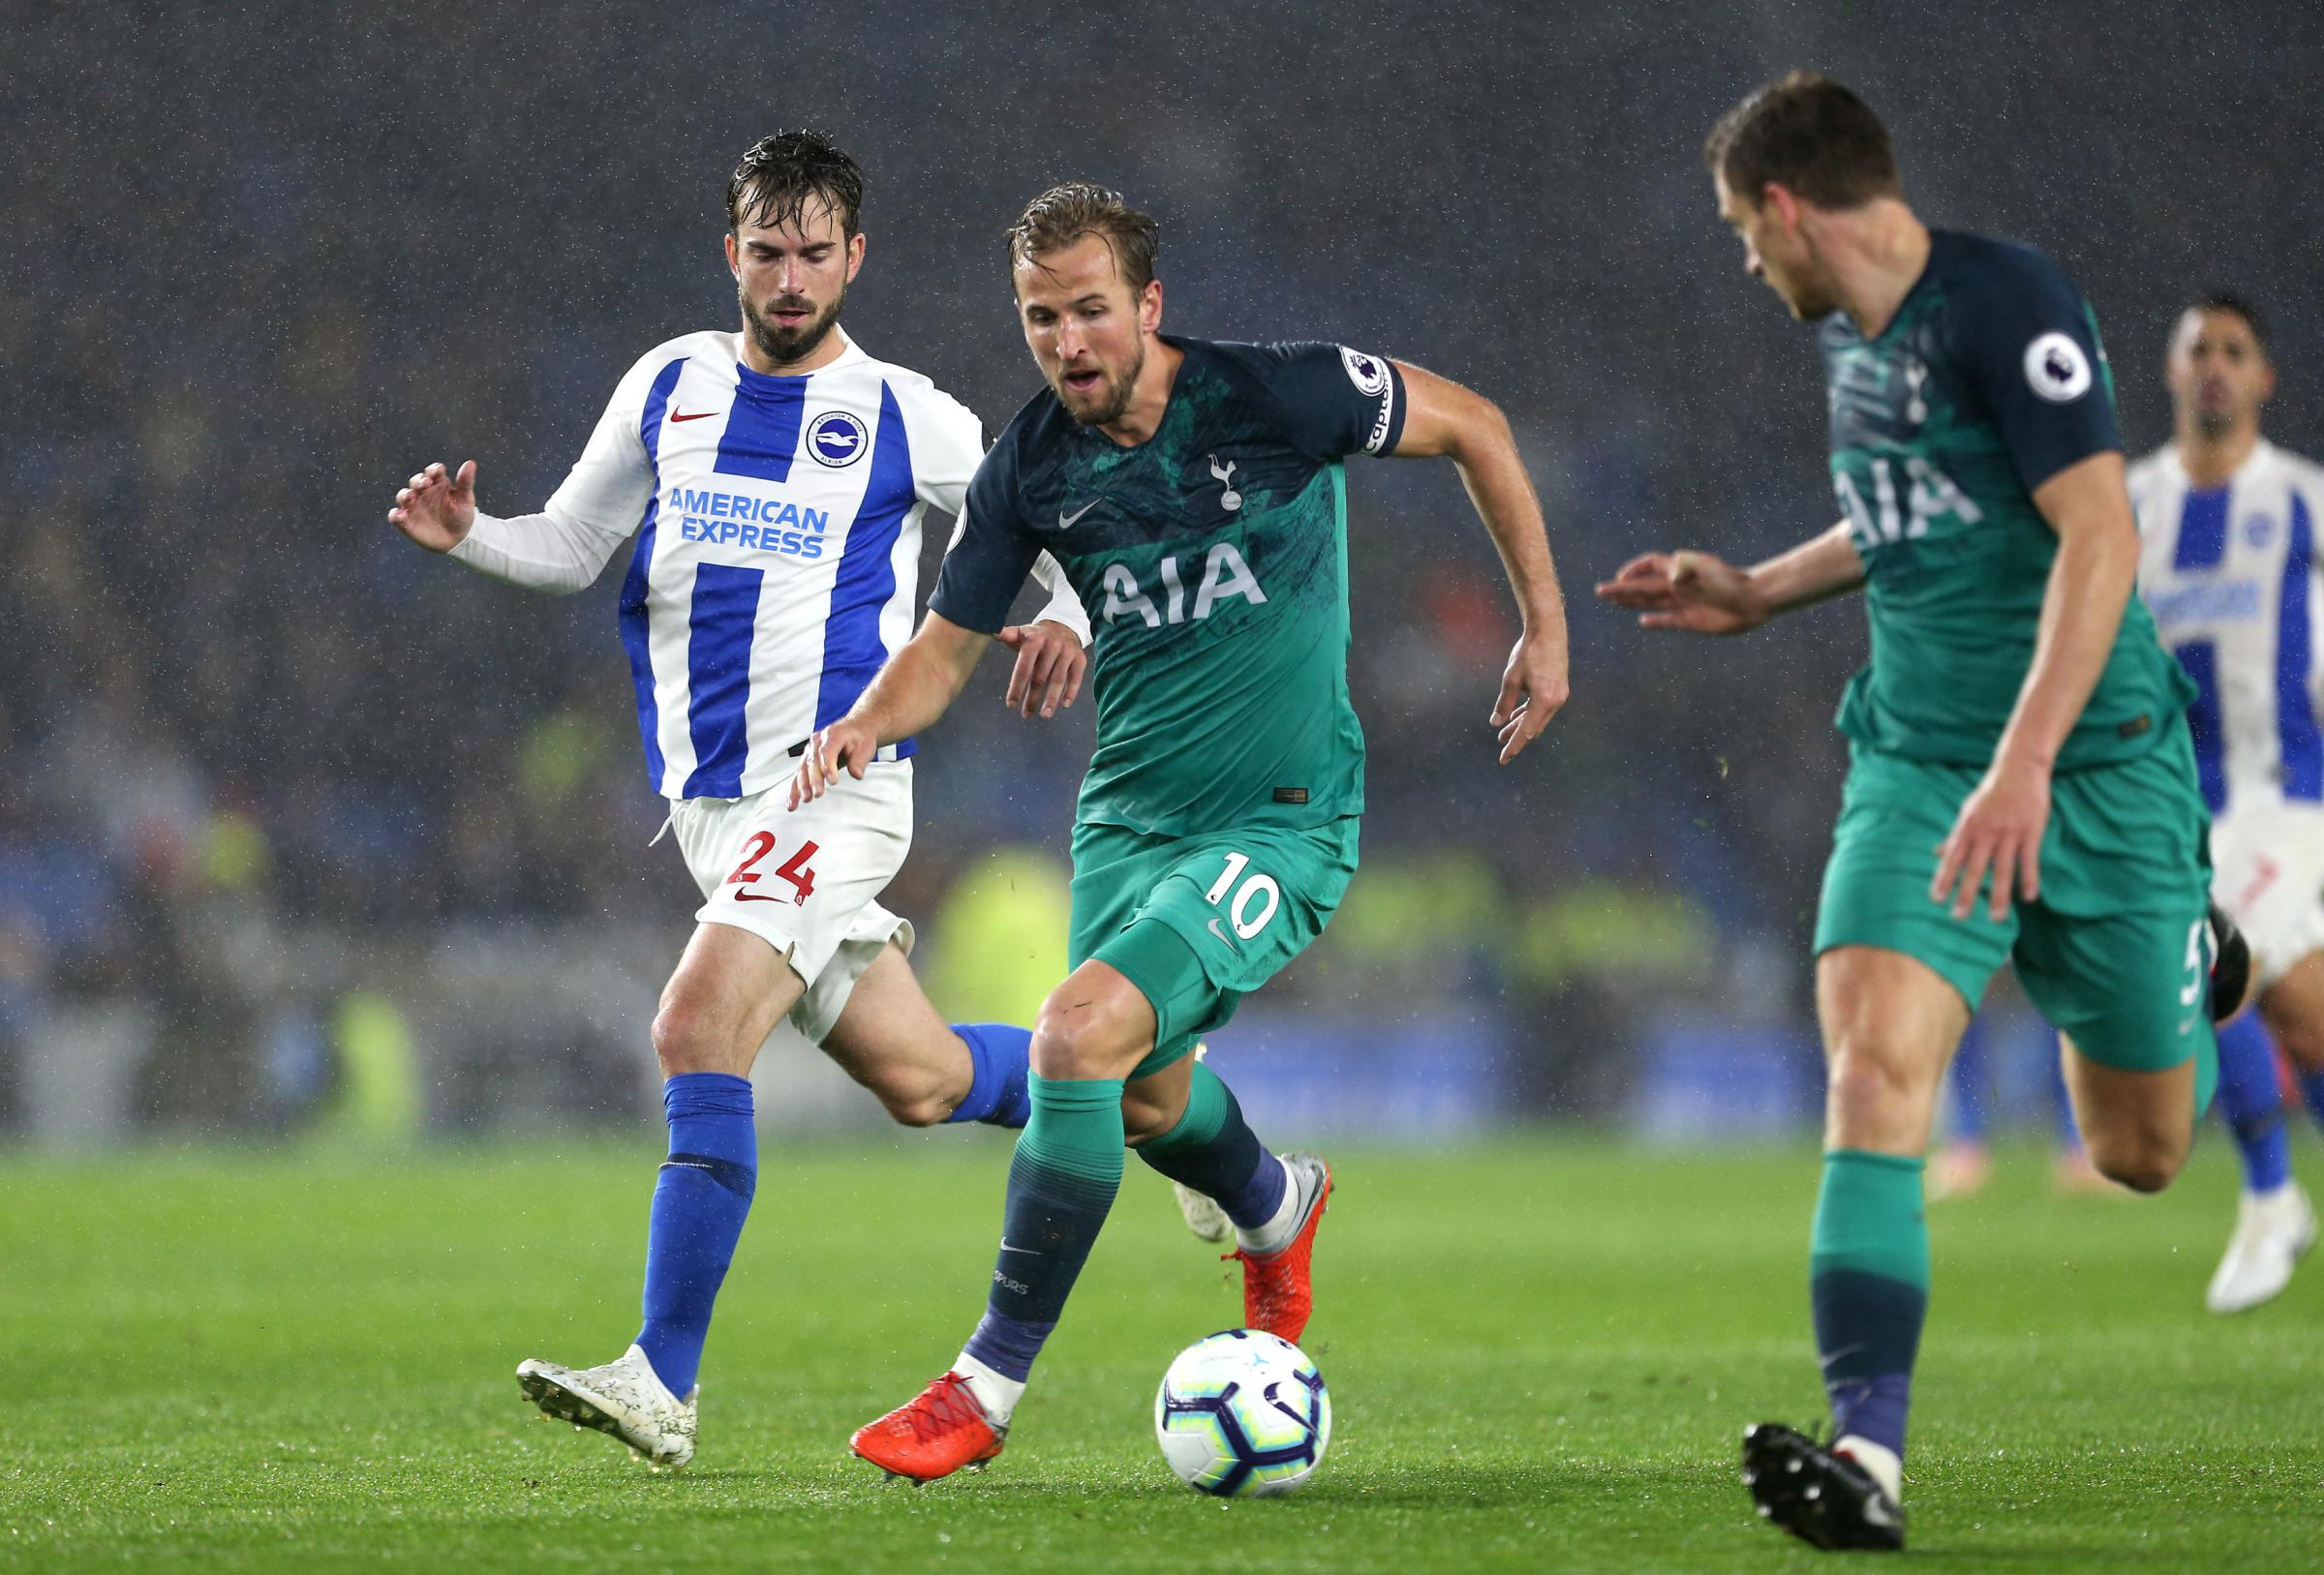 Tottenham's Harry Kane on the attack at the Amex